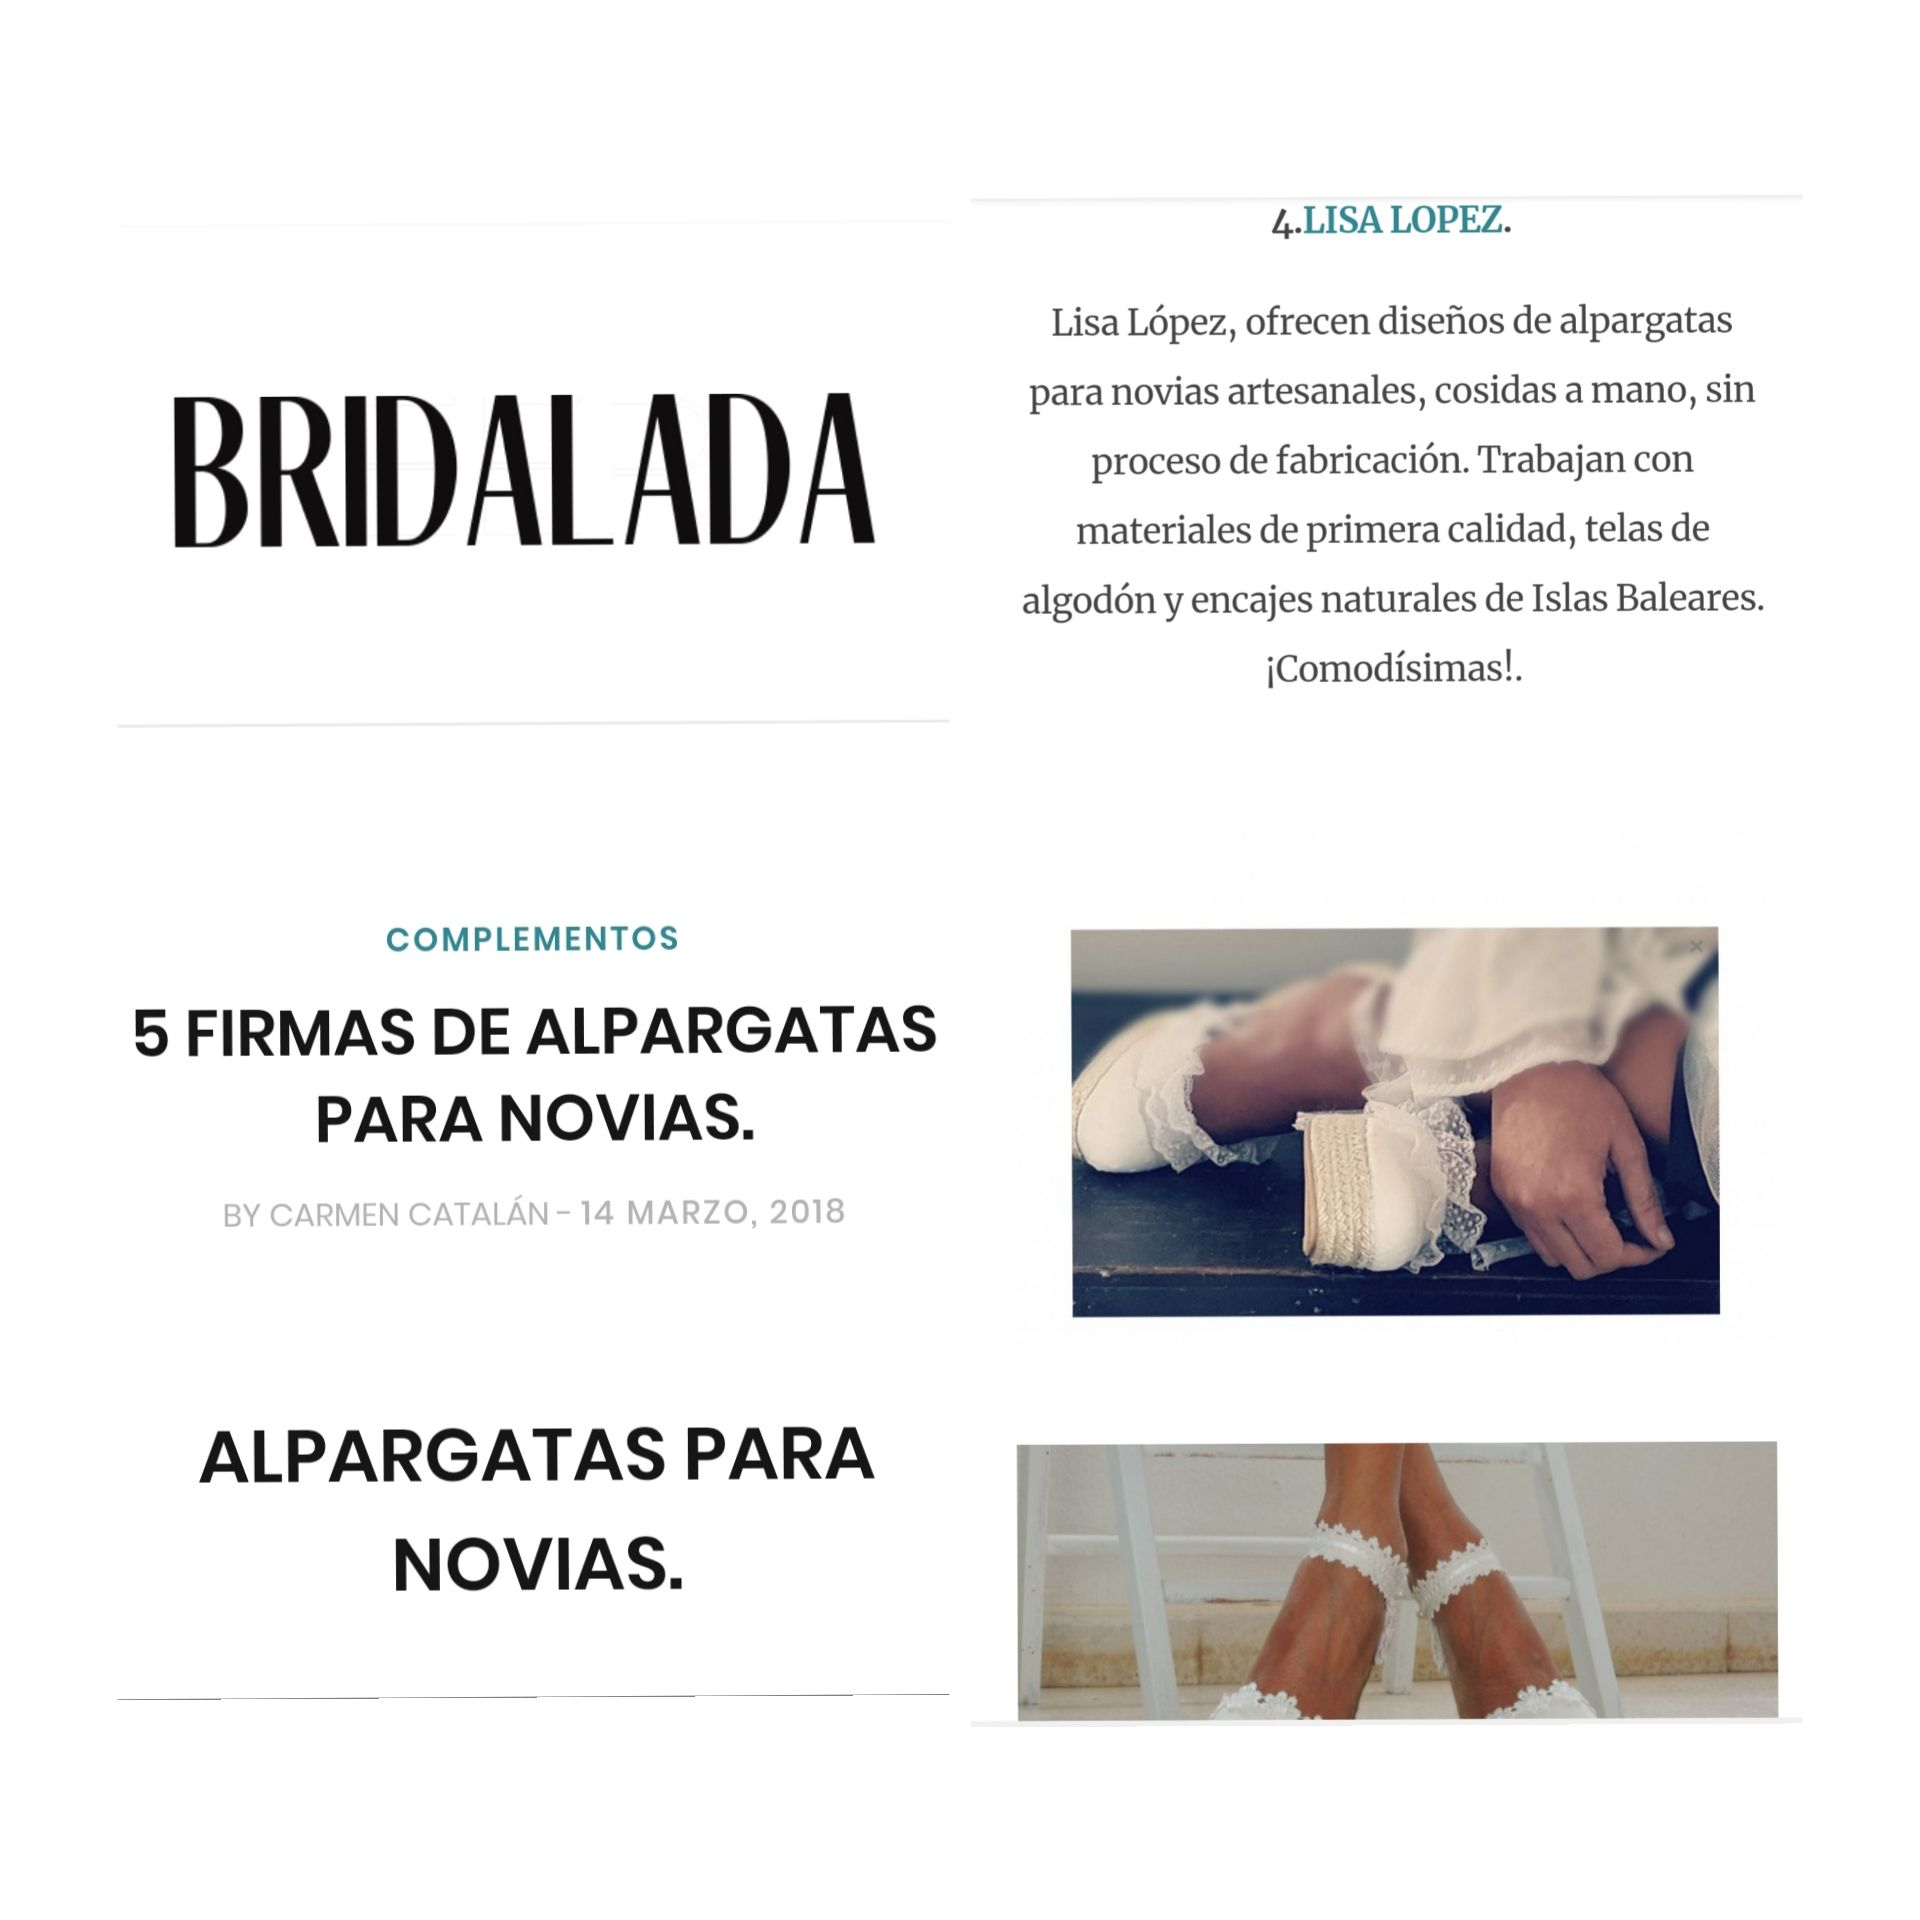 BRIDALA WEDDING BLOG